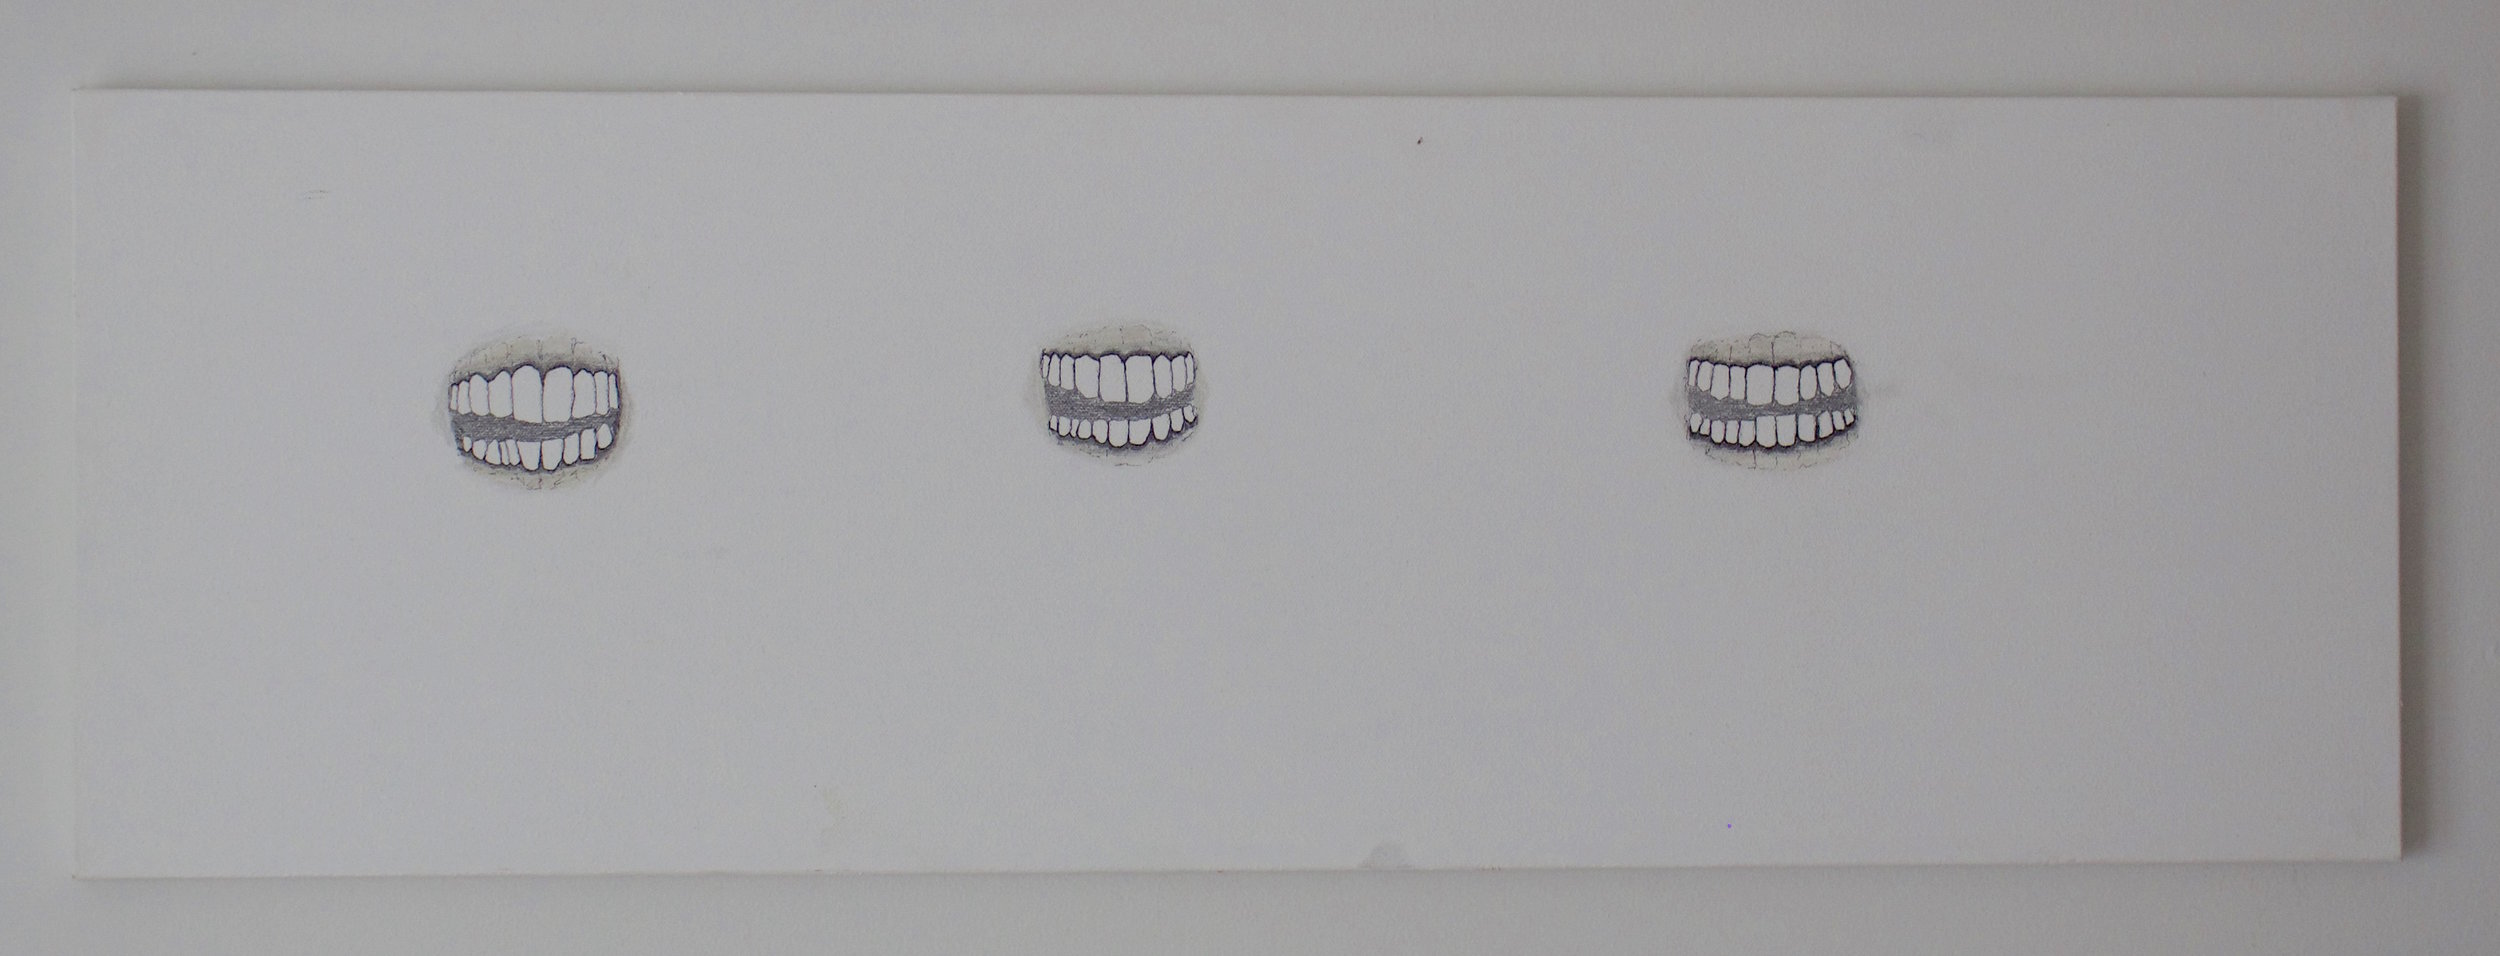 Teeth,  2016 Pencil and charcoal on canvas 12 x 36 inches